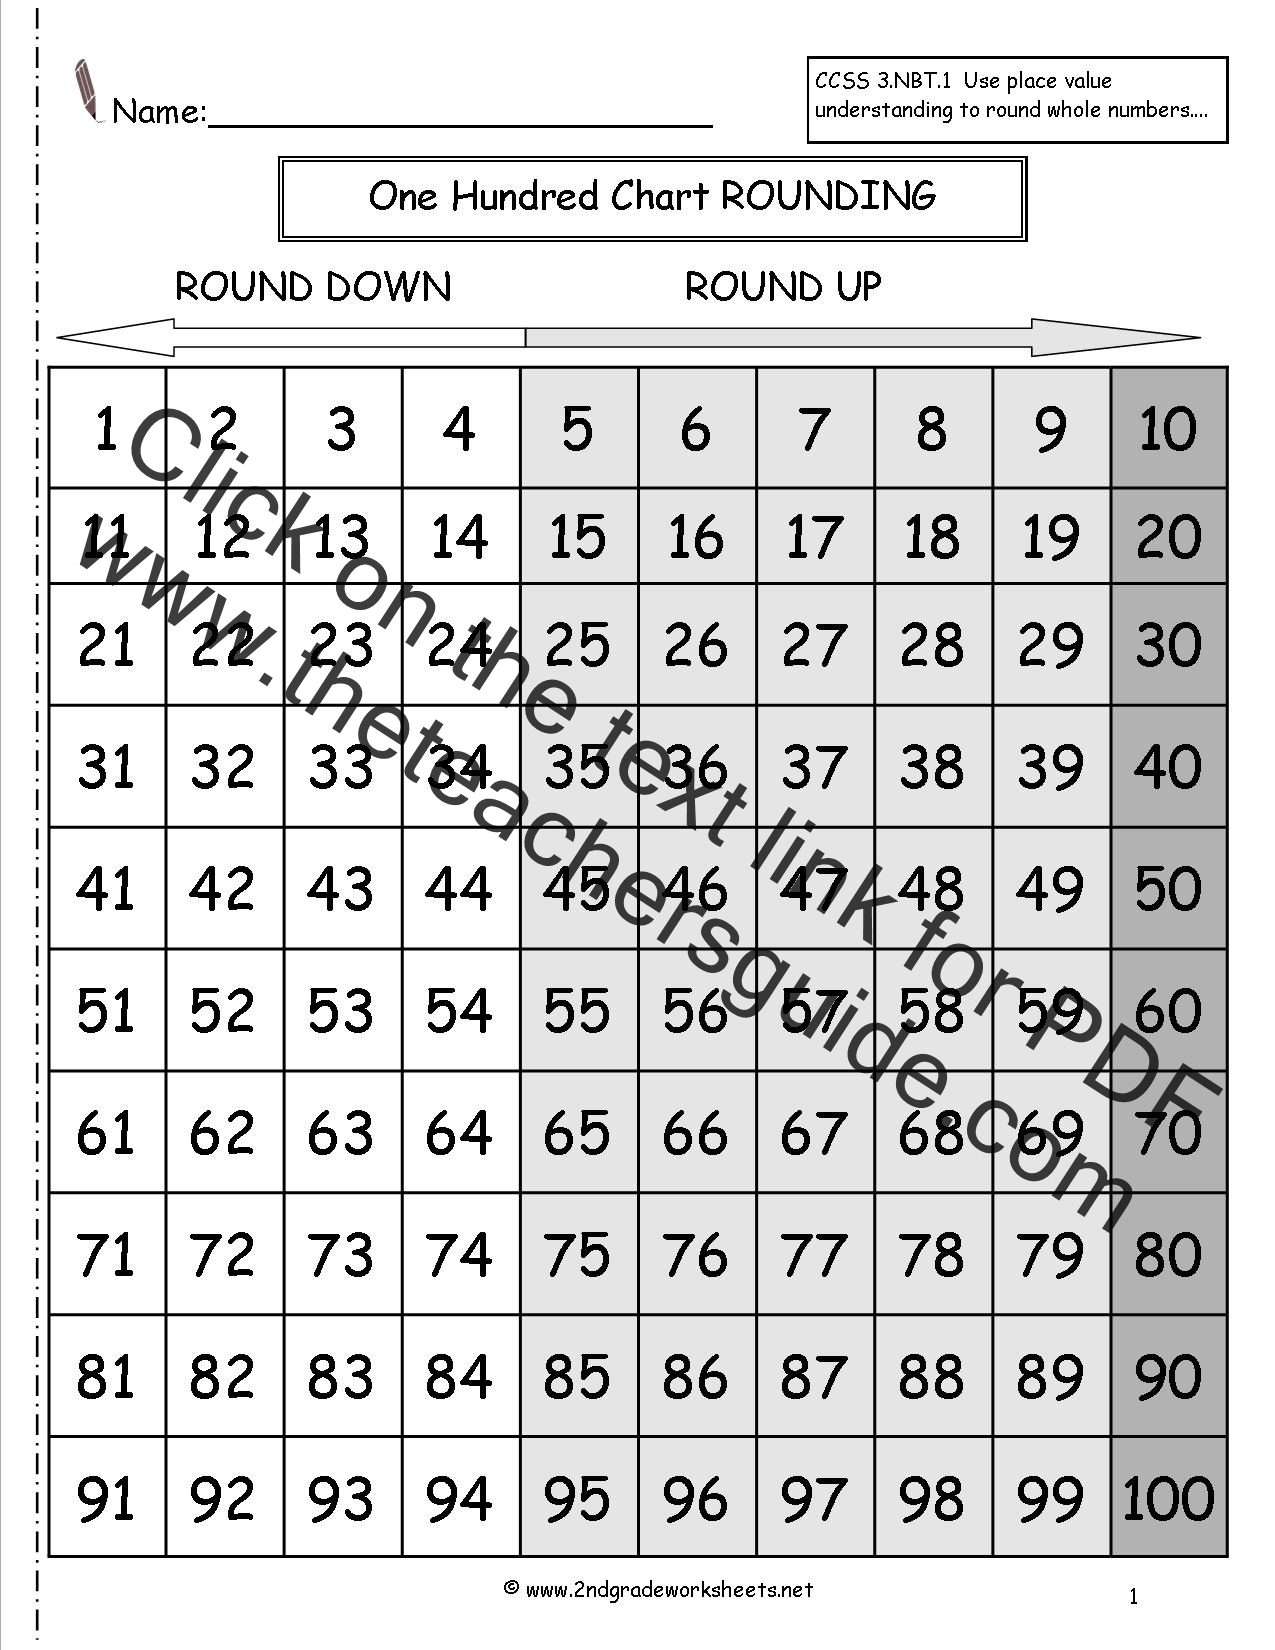 Worksheets Rounding Whole Numbers Worksheet rounding whole numbers worksheets